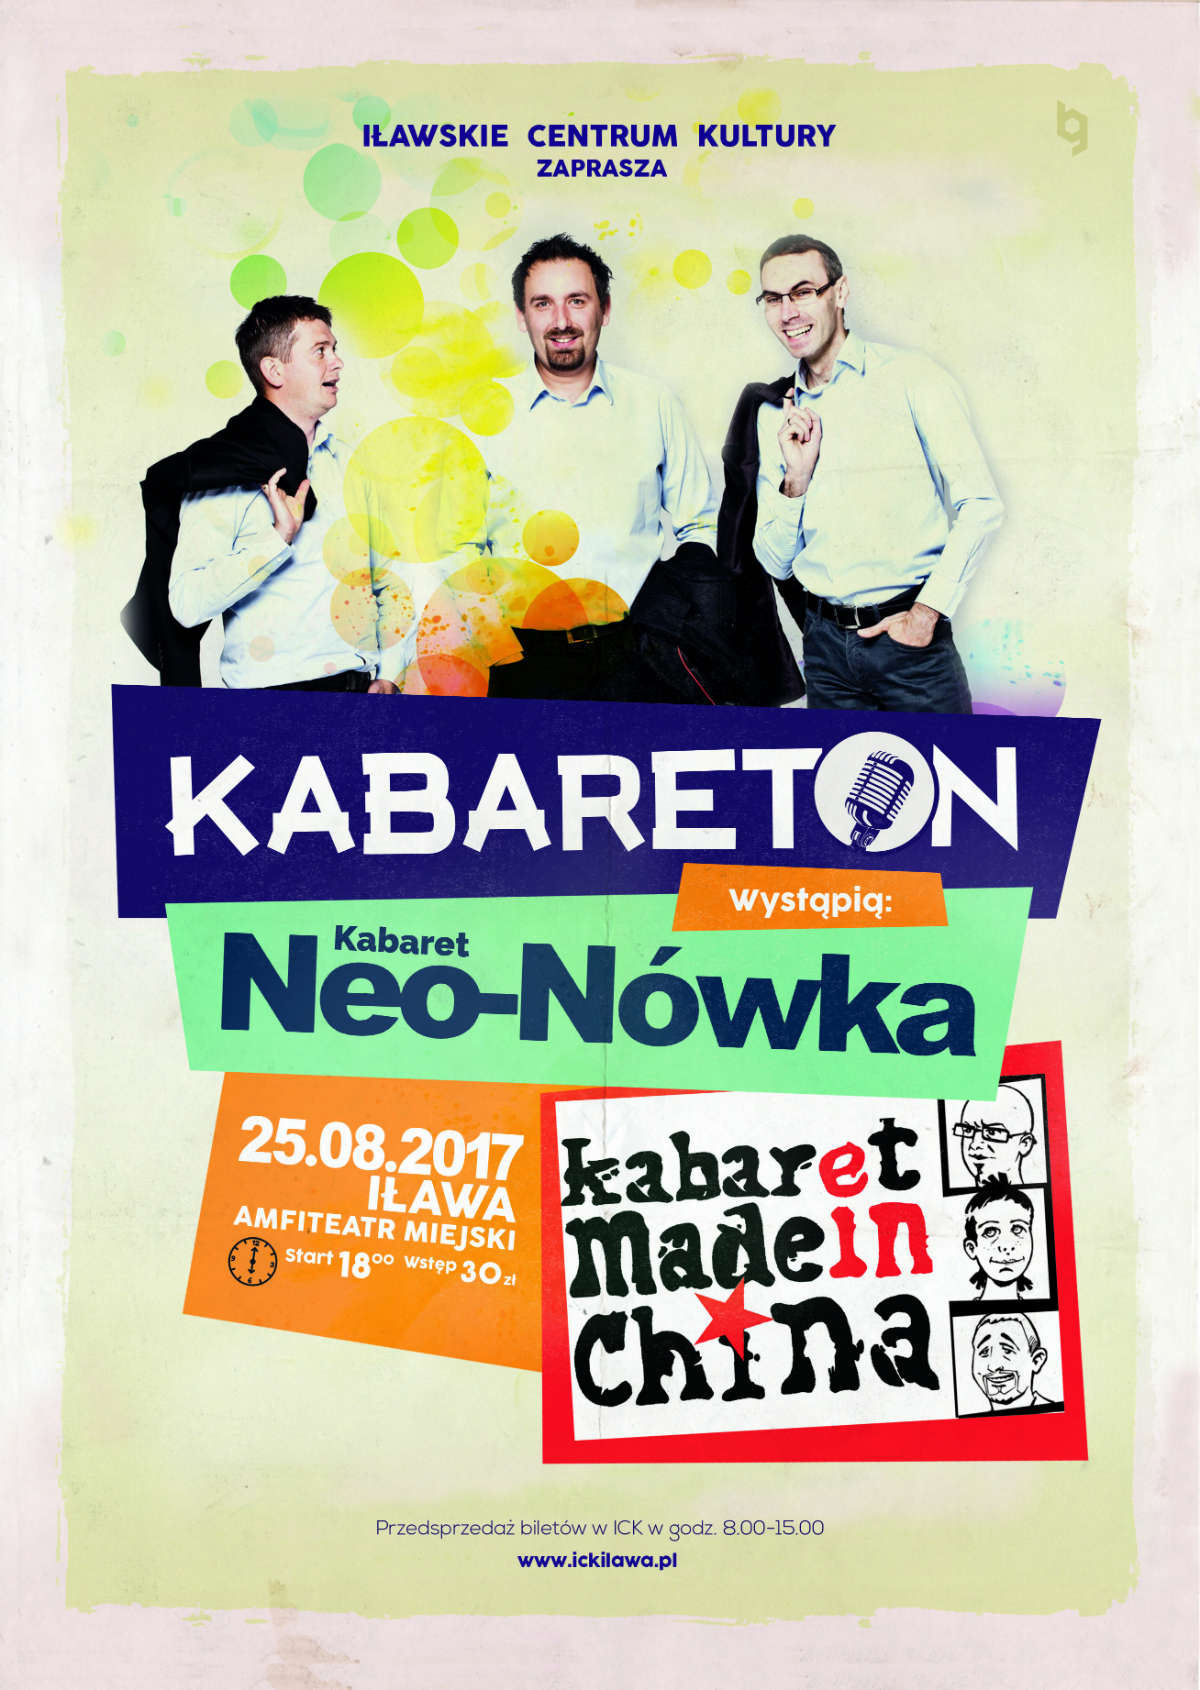 Kabareton w Iławie. Made In China i Neo – Nówka! - full image